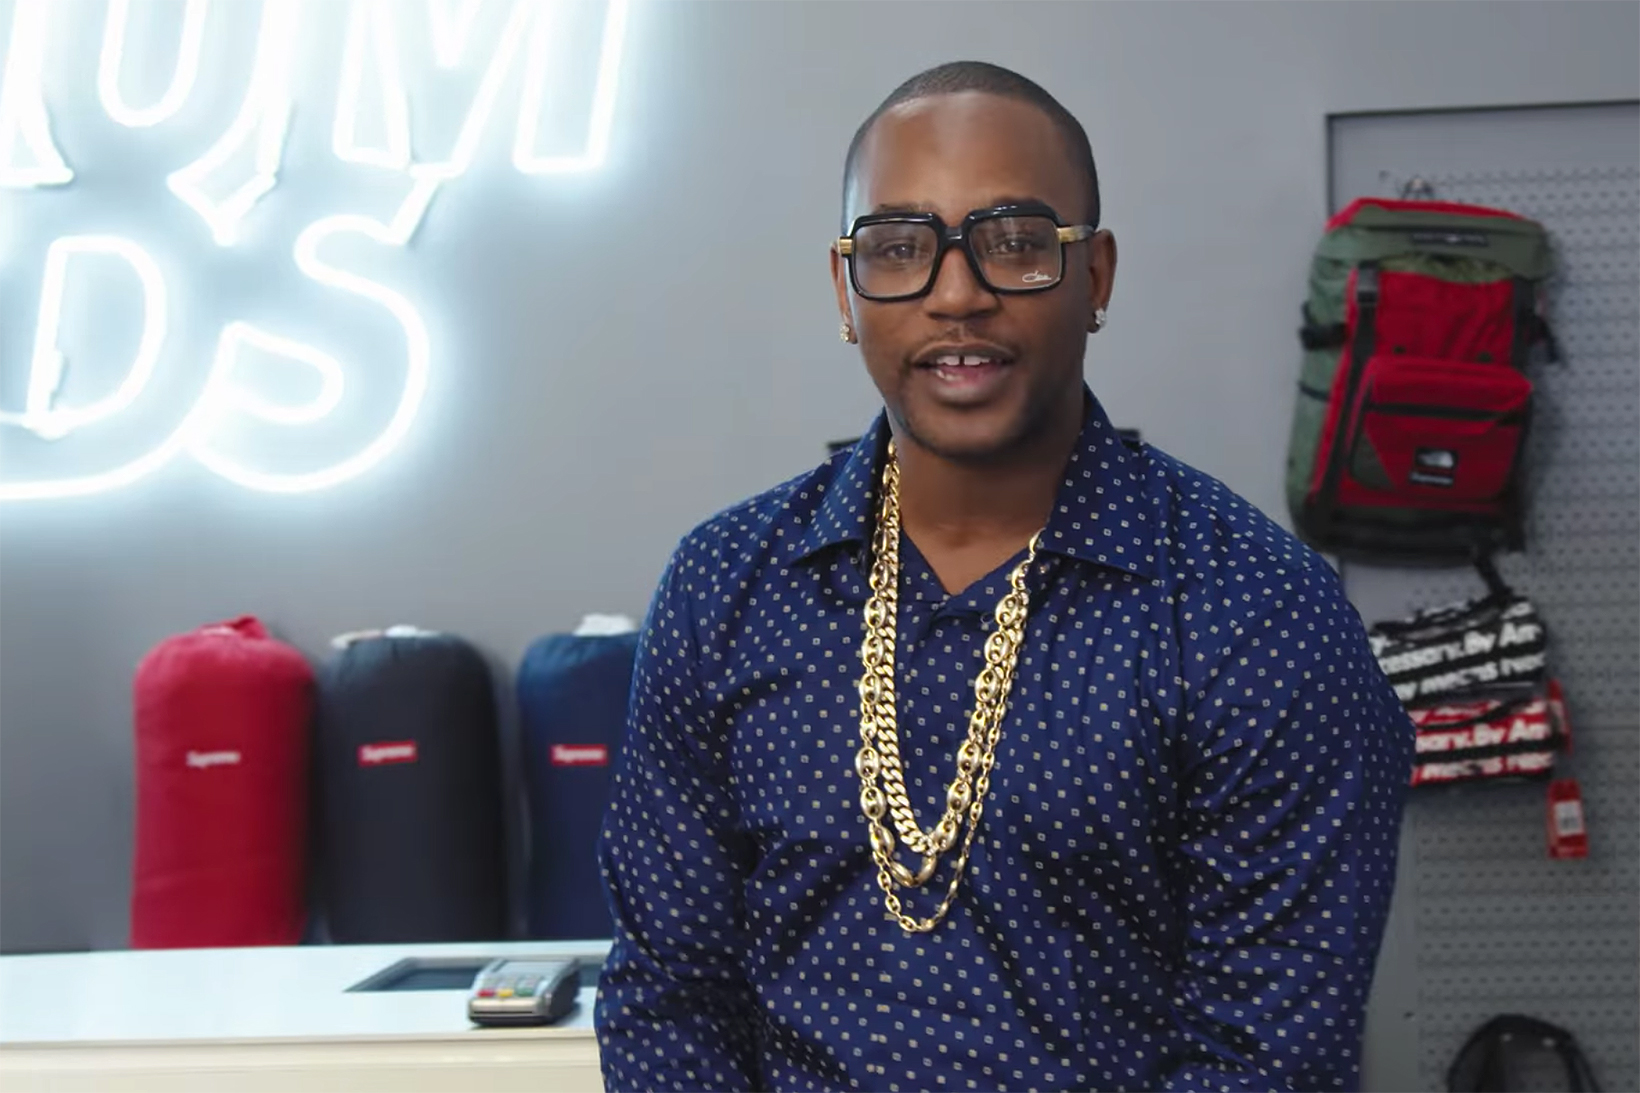 Cam'ron Goes 'Sneaker Shopping' and Talks Hooping in Pradas